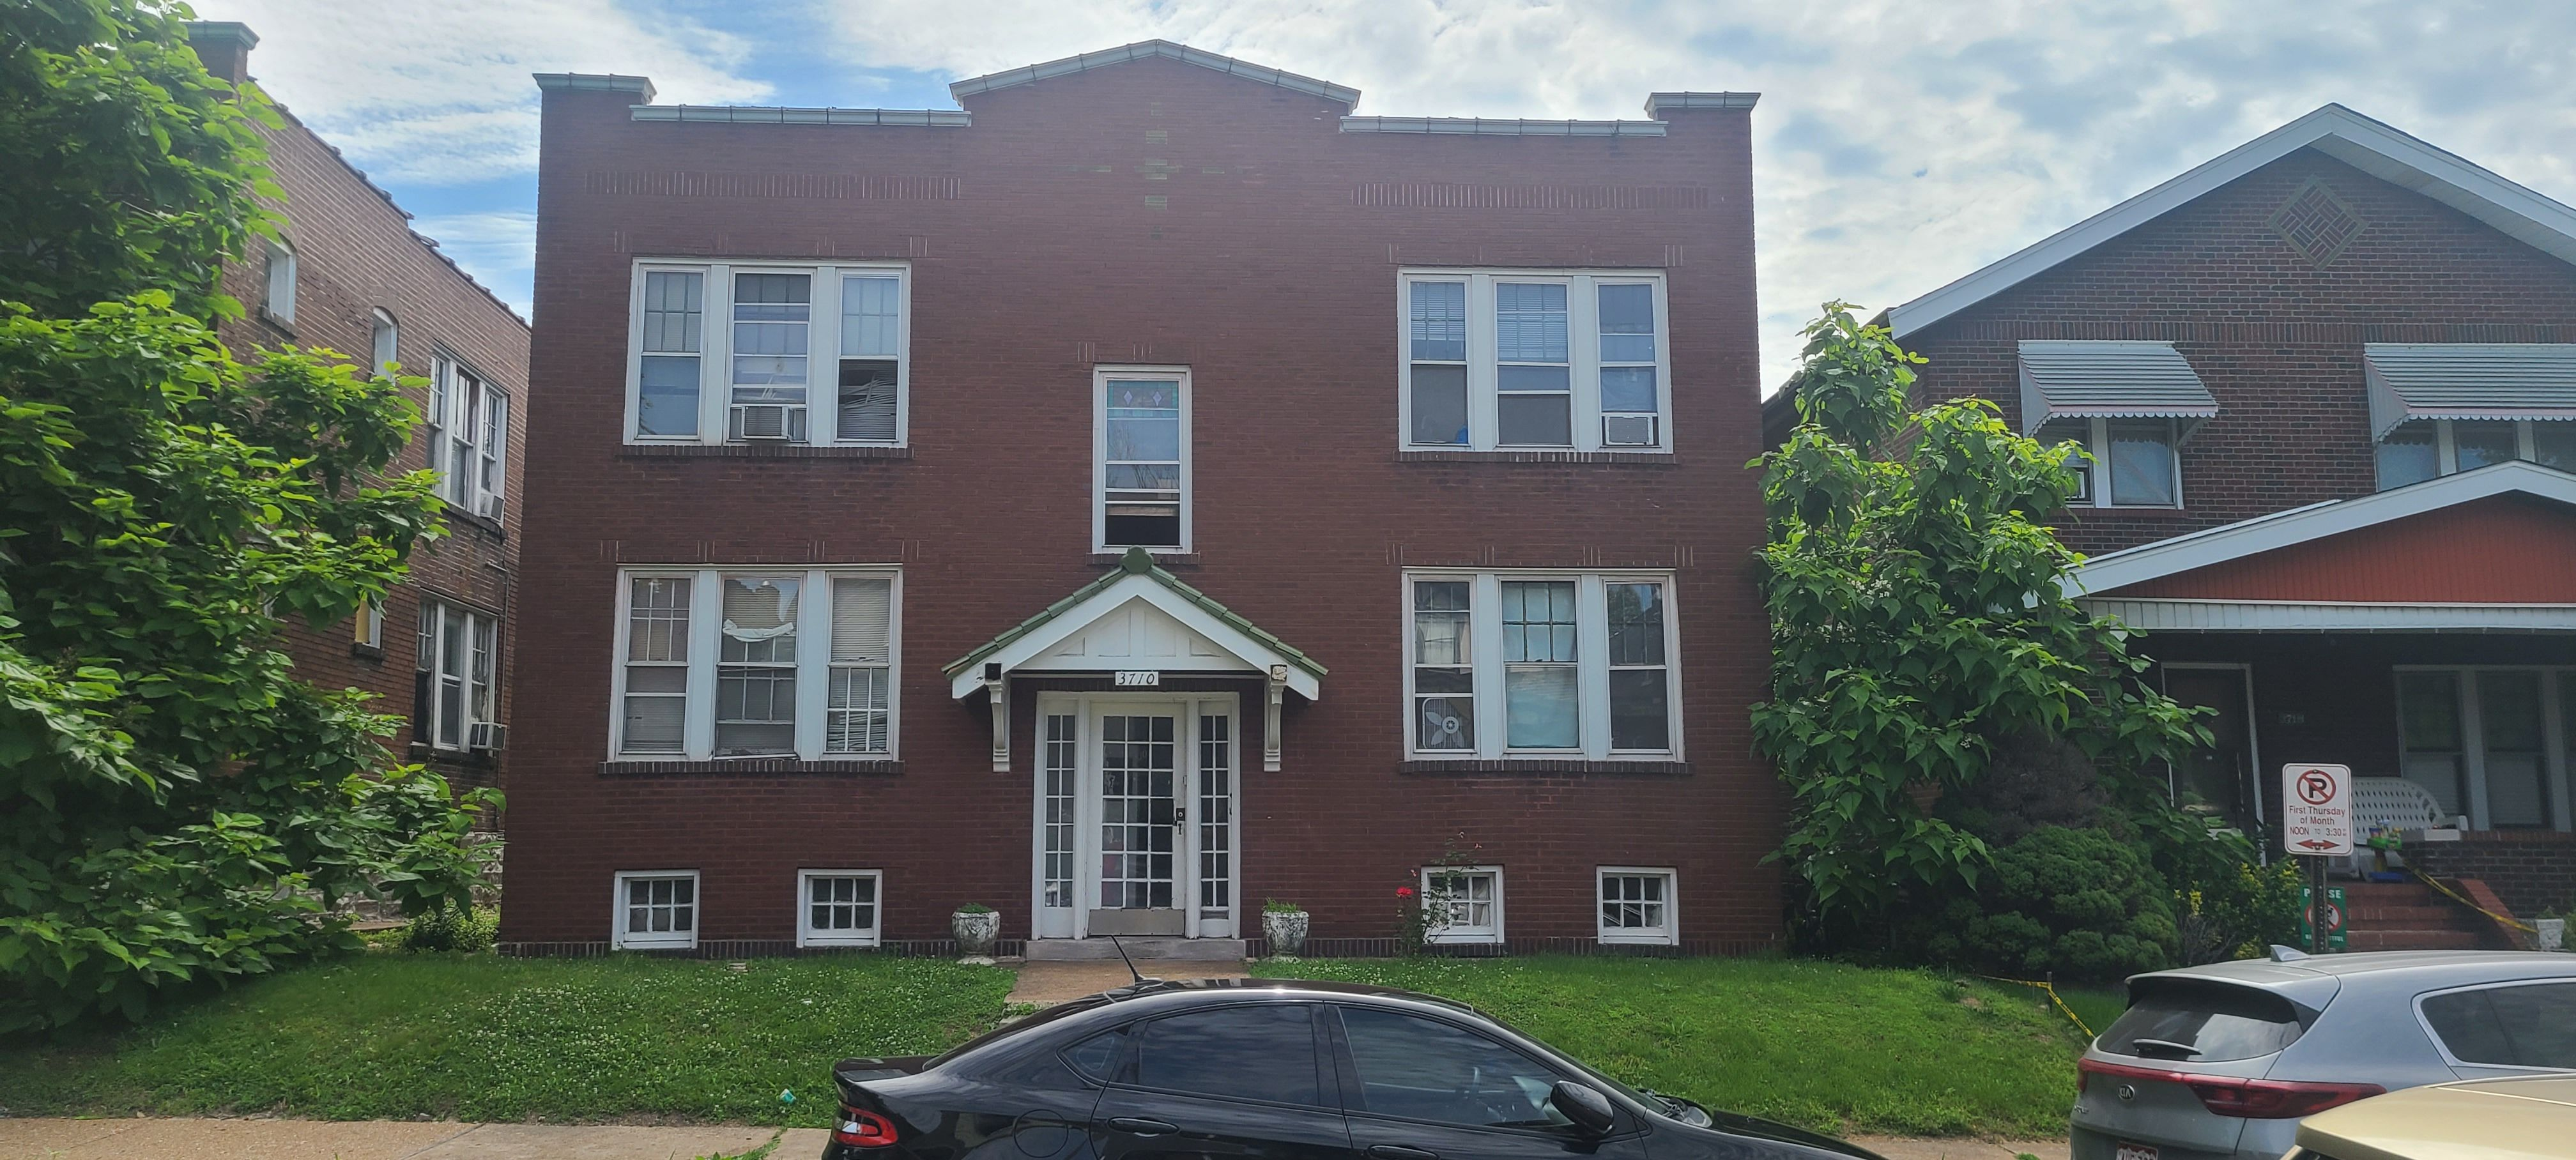 3710 Hydraulic Ave, St. Louis, MO